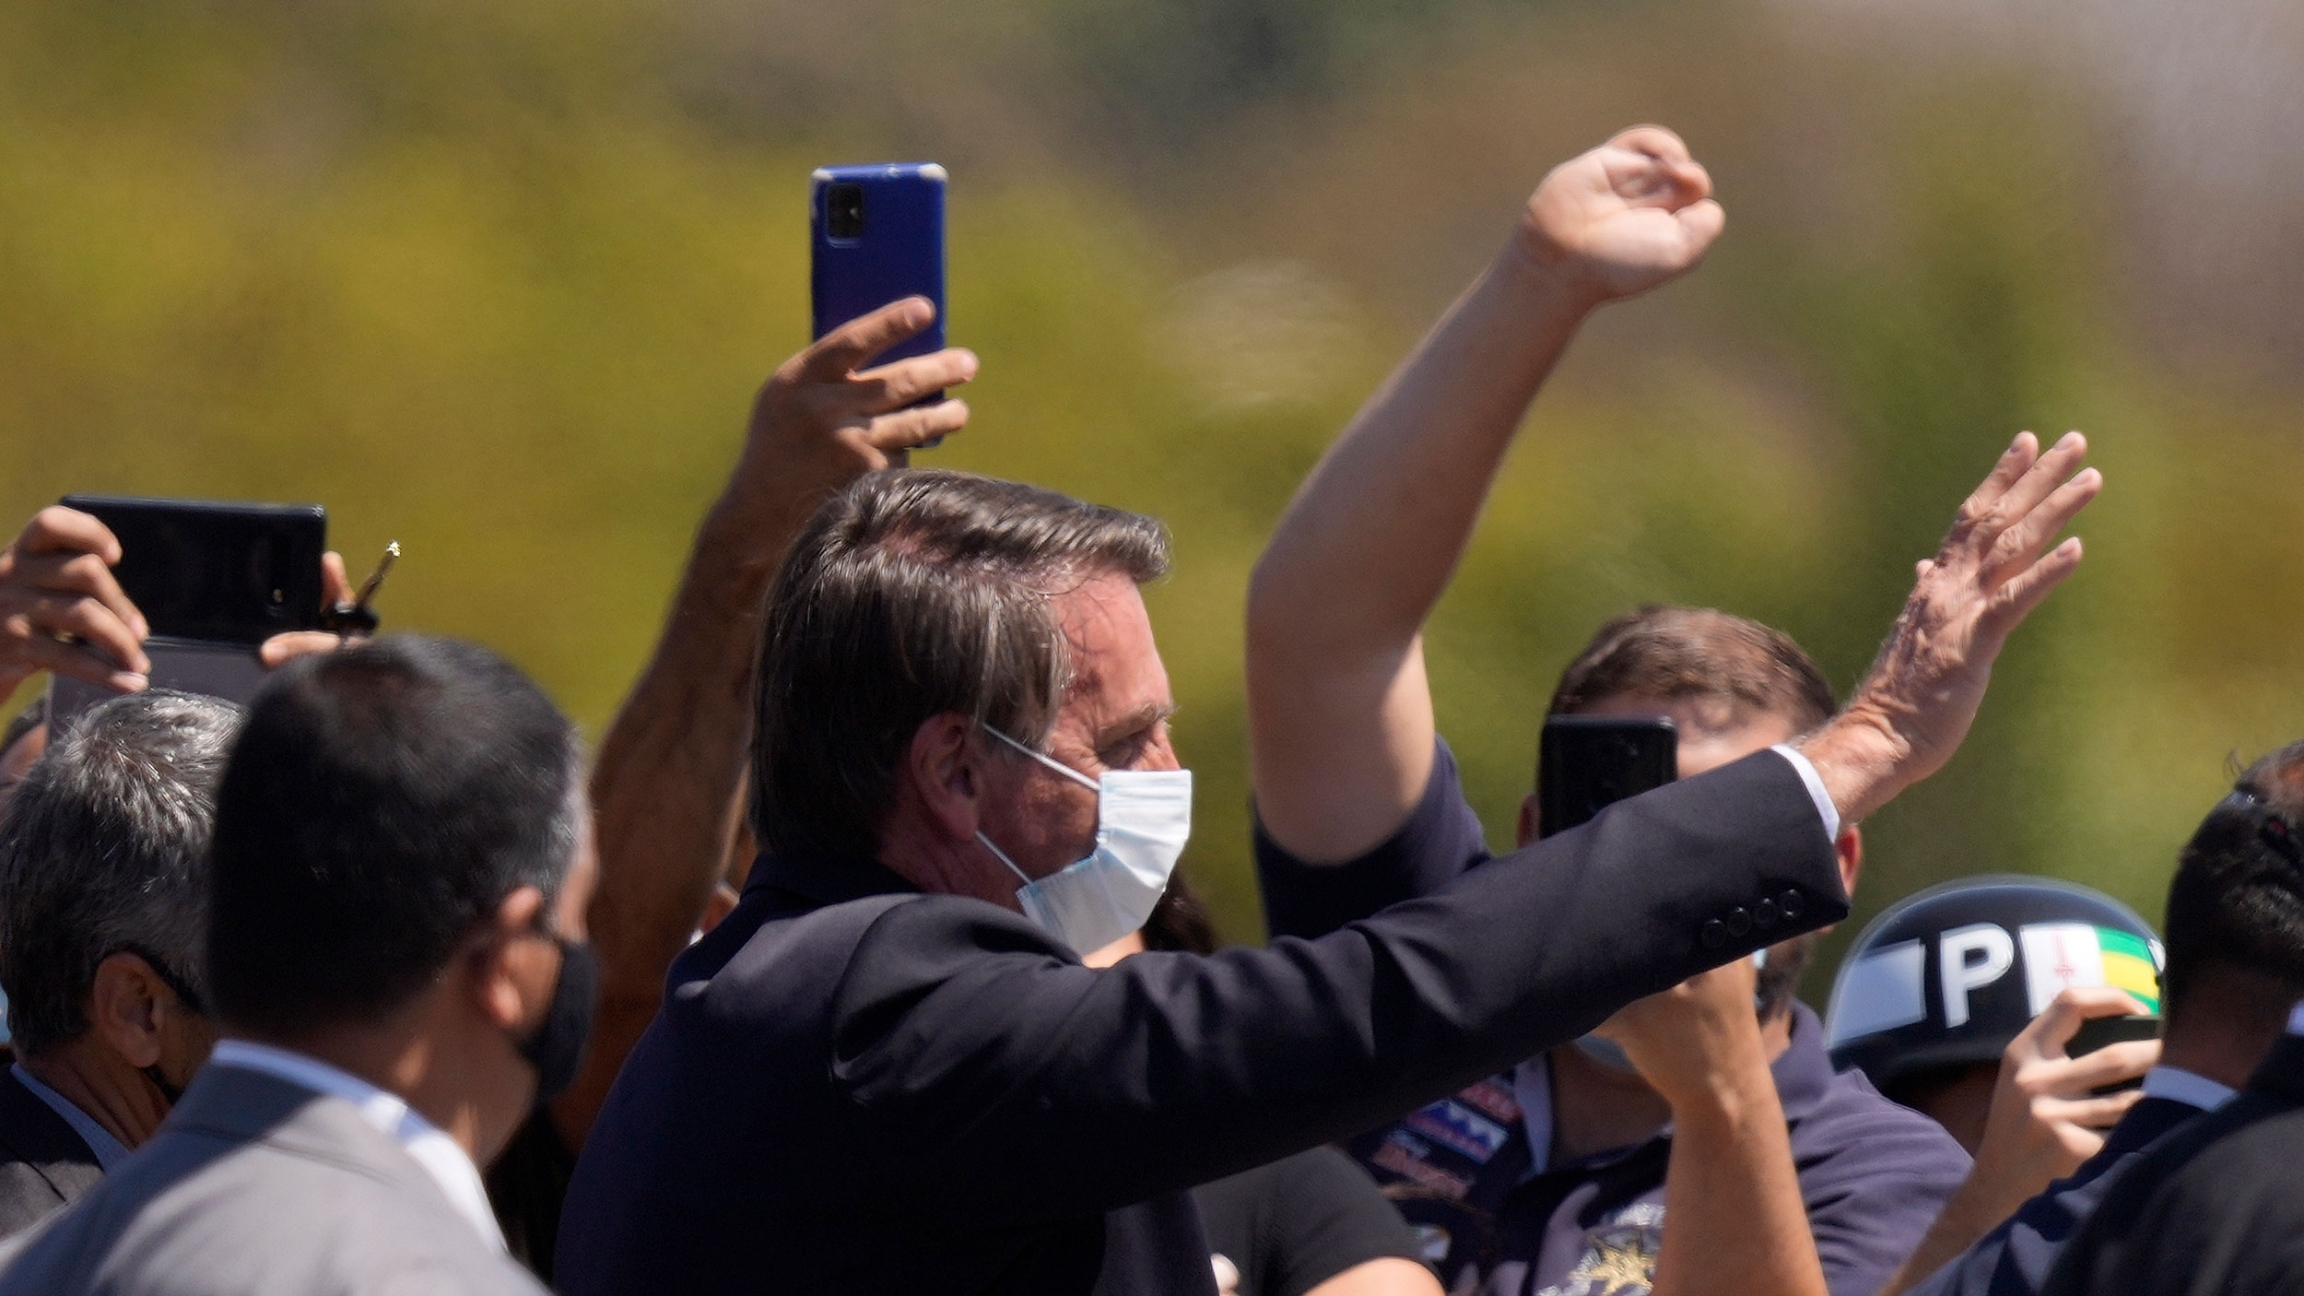 Brazilian President Jair Bolsonaro waves to people during a ceremony marking Soldier Day at Army headquarters in Brasilia, Brazil, Aug. 25, 2021.